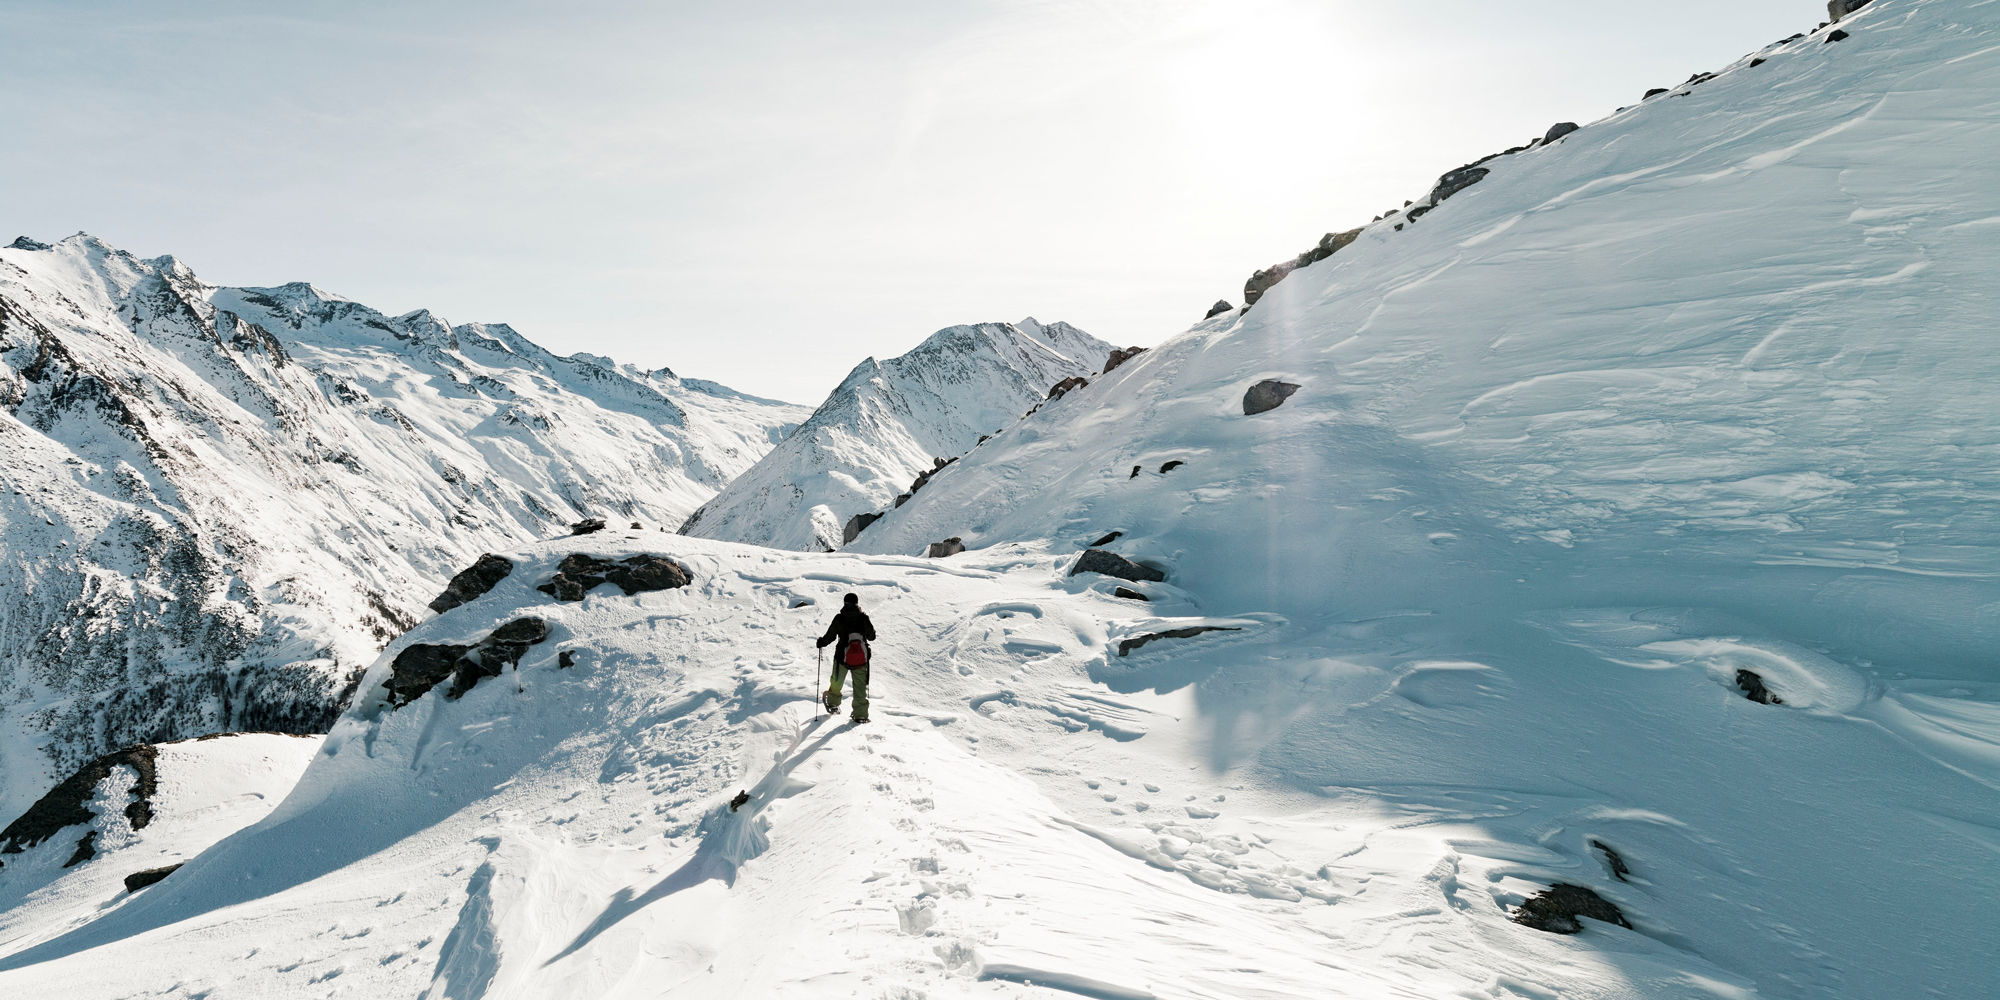 Winter hiking in the Free Republic of Holidays Saas-Fee